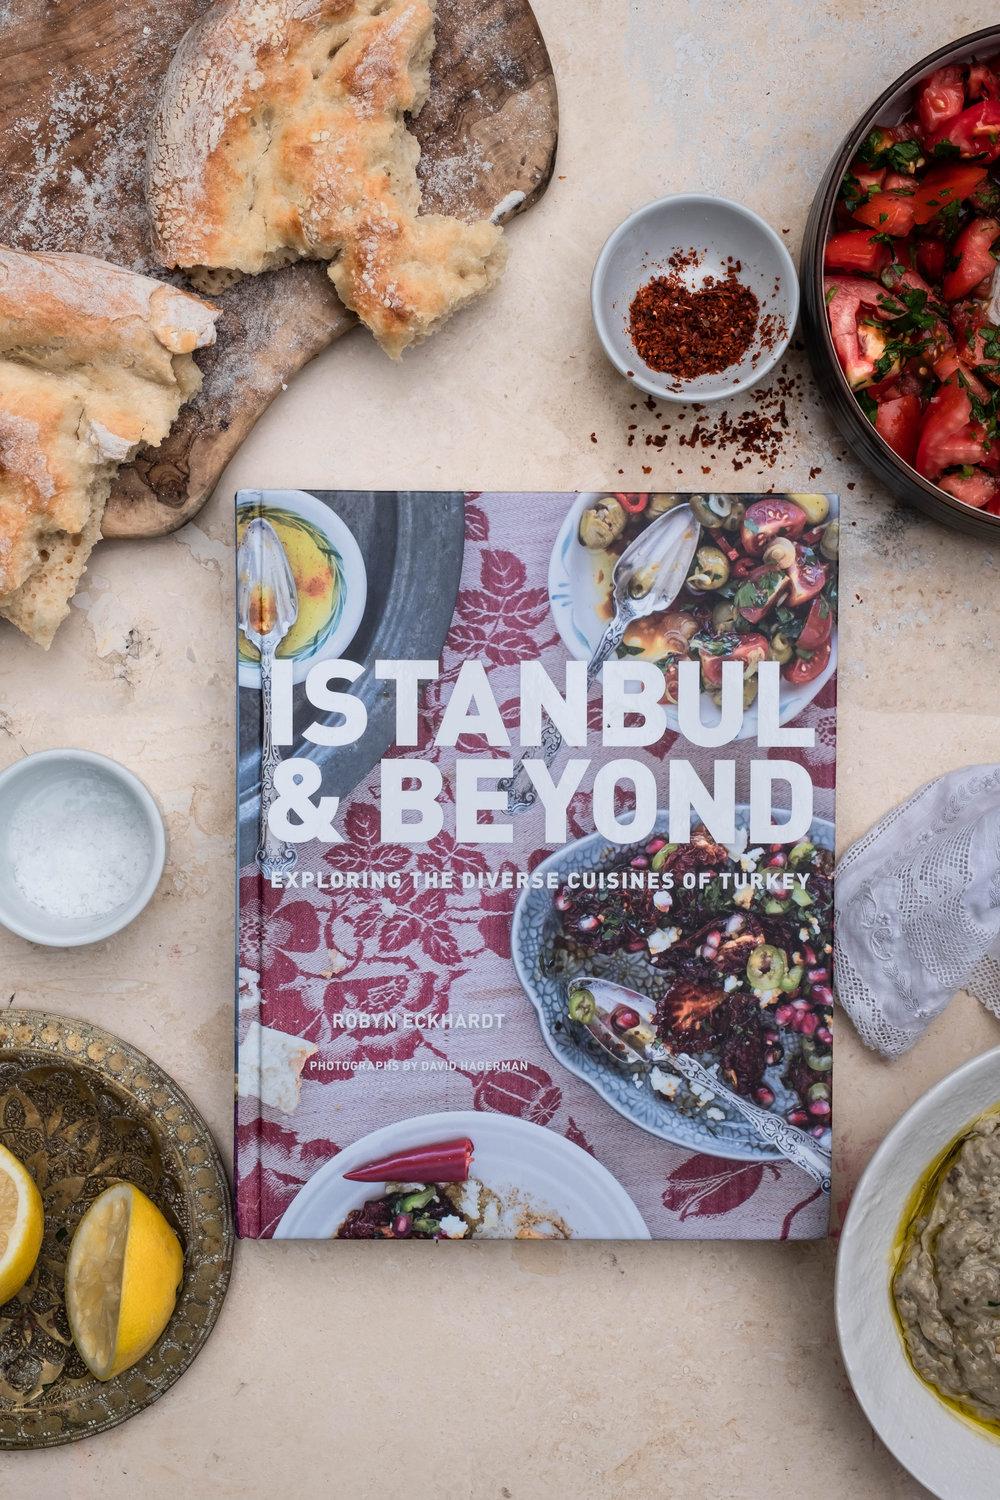 ROSE & IVY Journal Cook the Book | 'Istanbul and Beyond' + Baba Ganouj & Fingerprint Flatbread (Tirnak Pidesi)